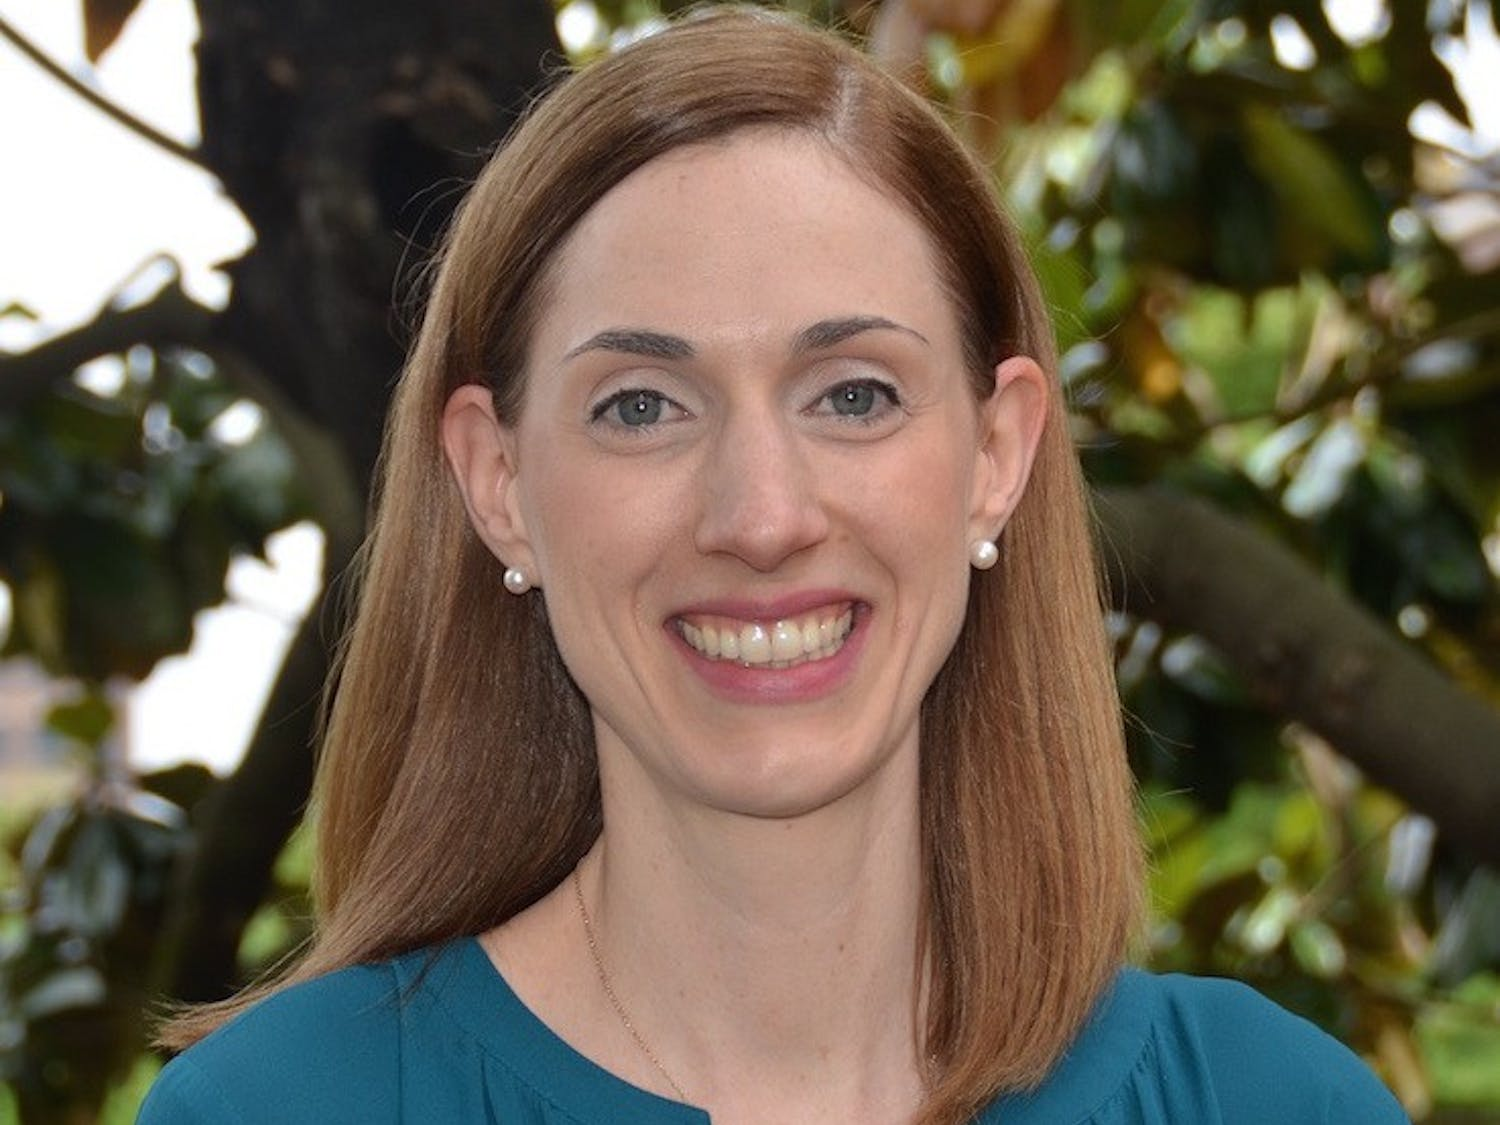 Dr. Becky Naumann, assistant professor of epidemiology and core faculty member of the Injury Prevention Research Center, led a project about opioid research. Photo courtesy of Becky Naumann.